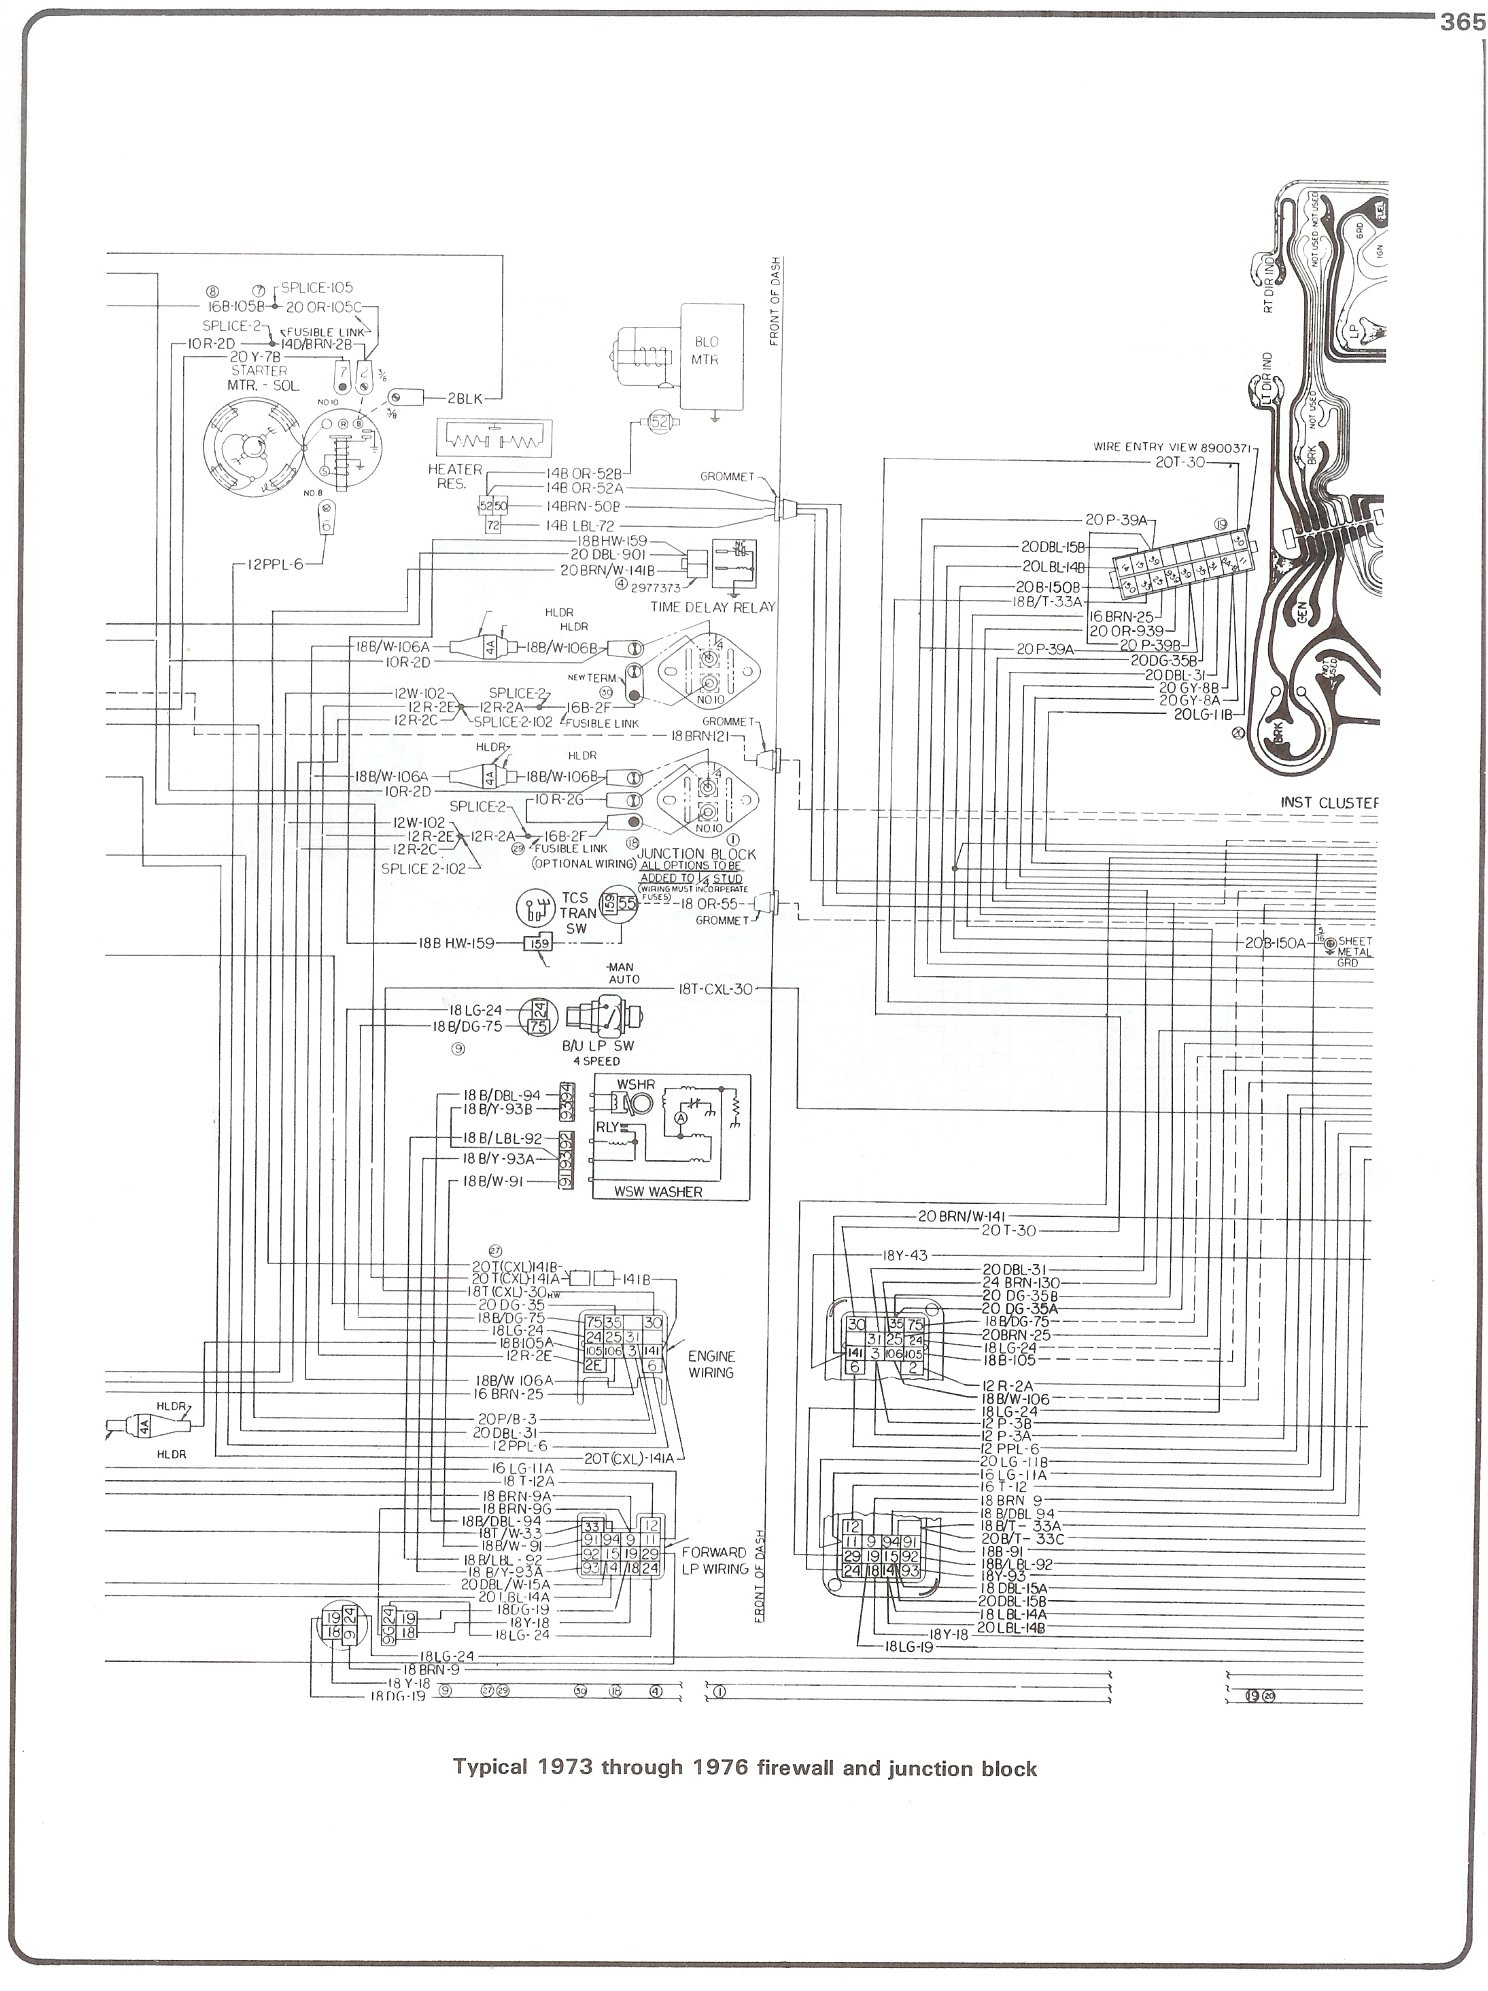 1988 ford bronco wiring harness diagram